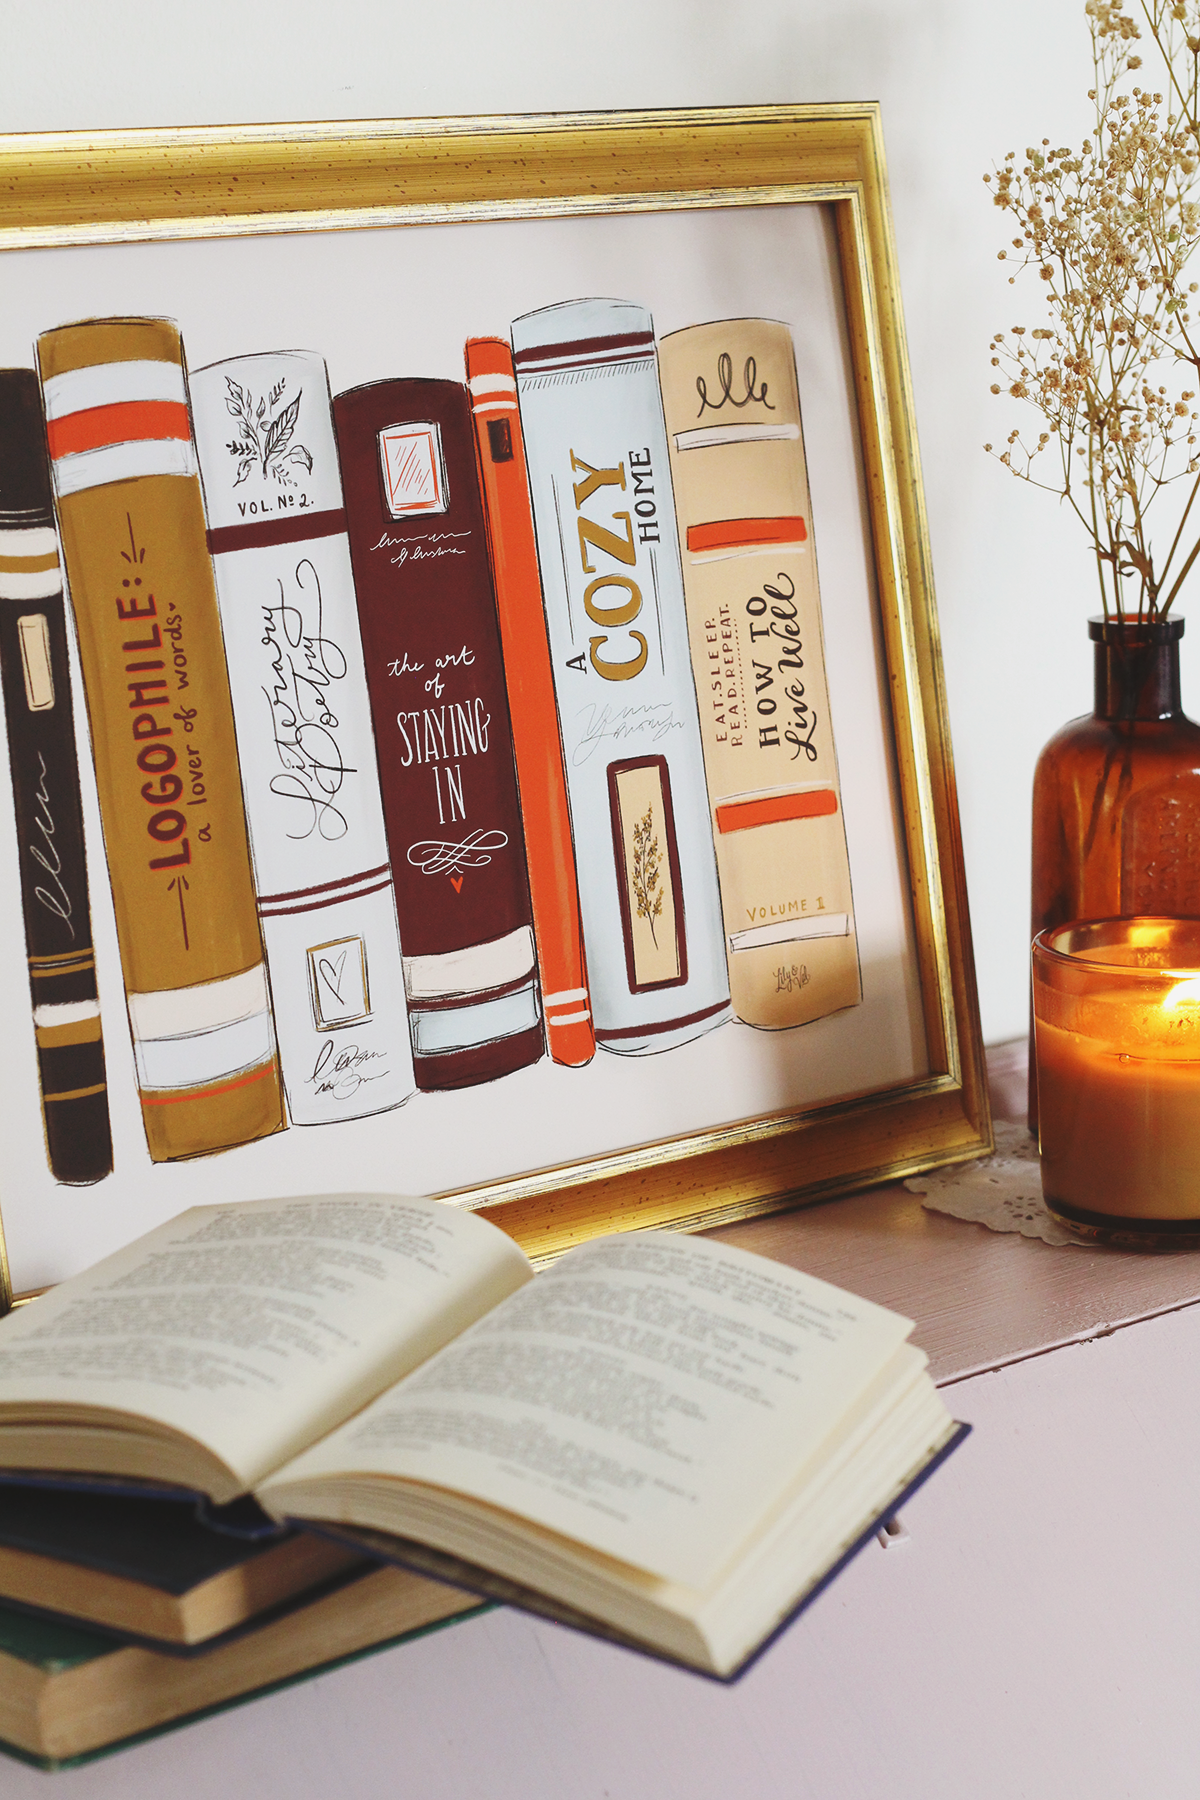 Book Spine Art Print